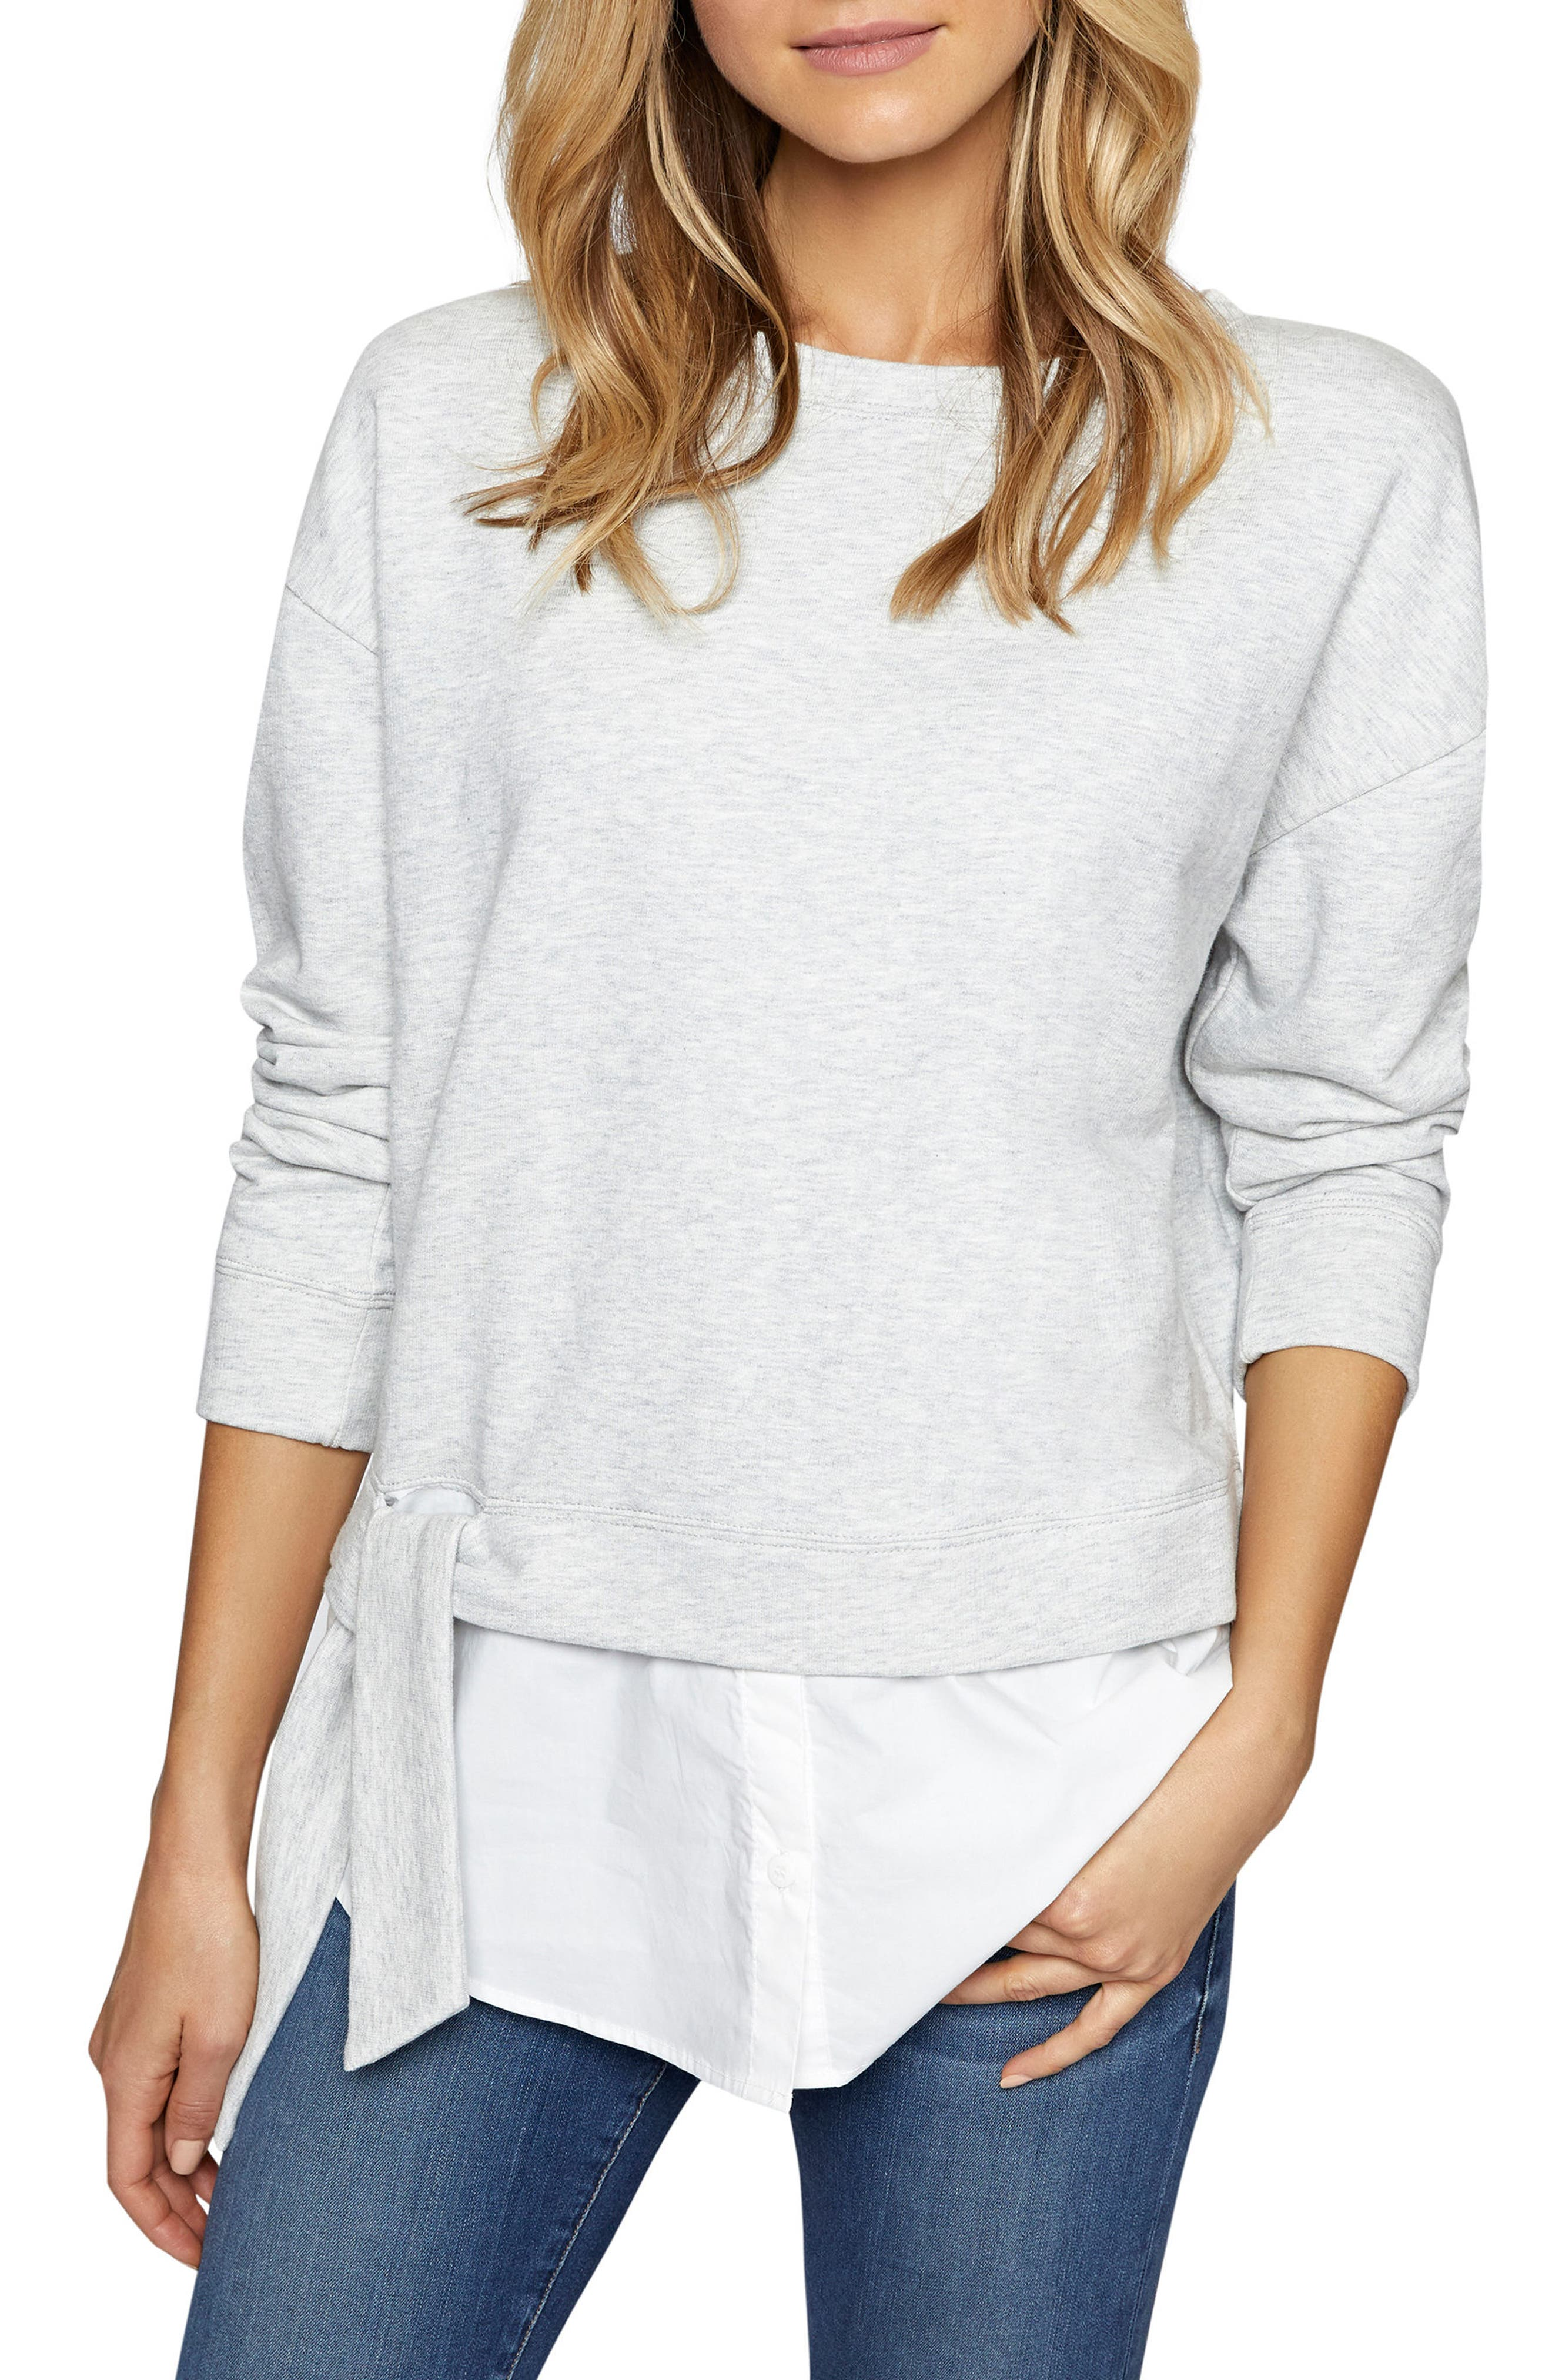 Ally Layered Look Sweatshirt,                         Main,                         color, 064